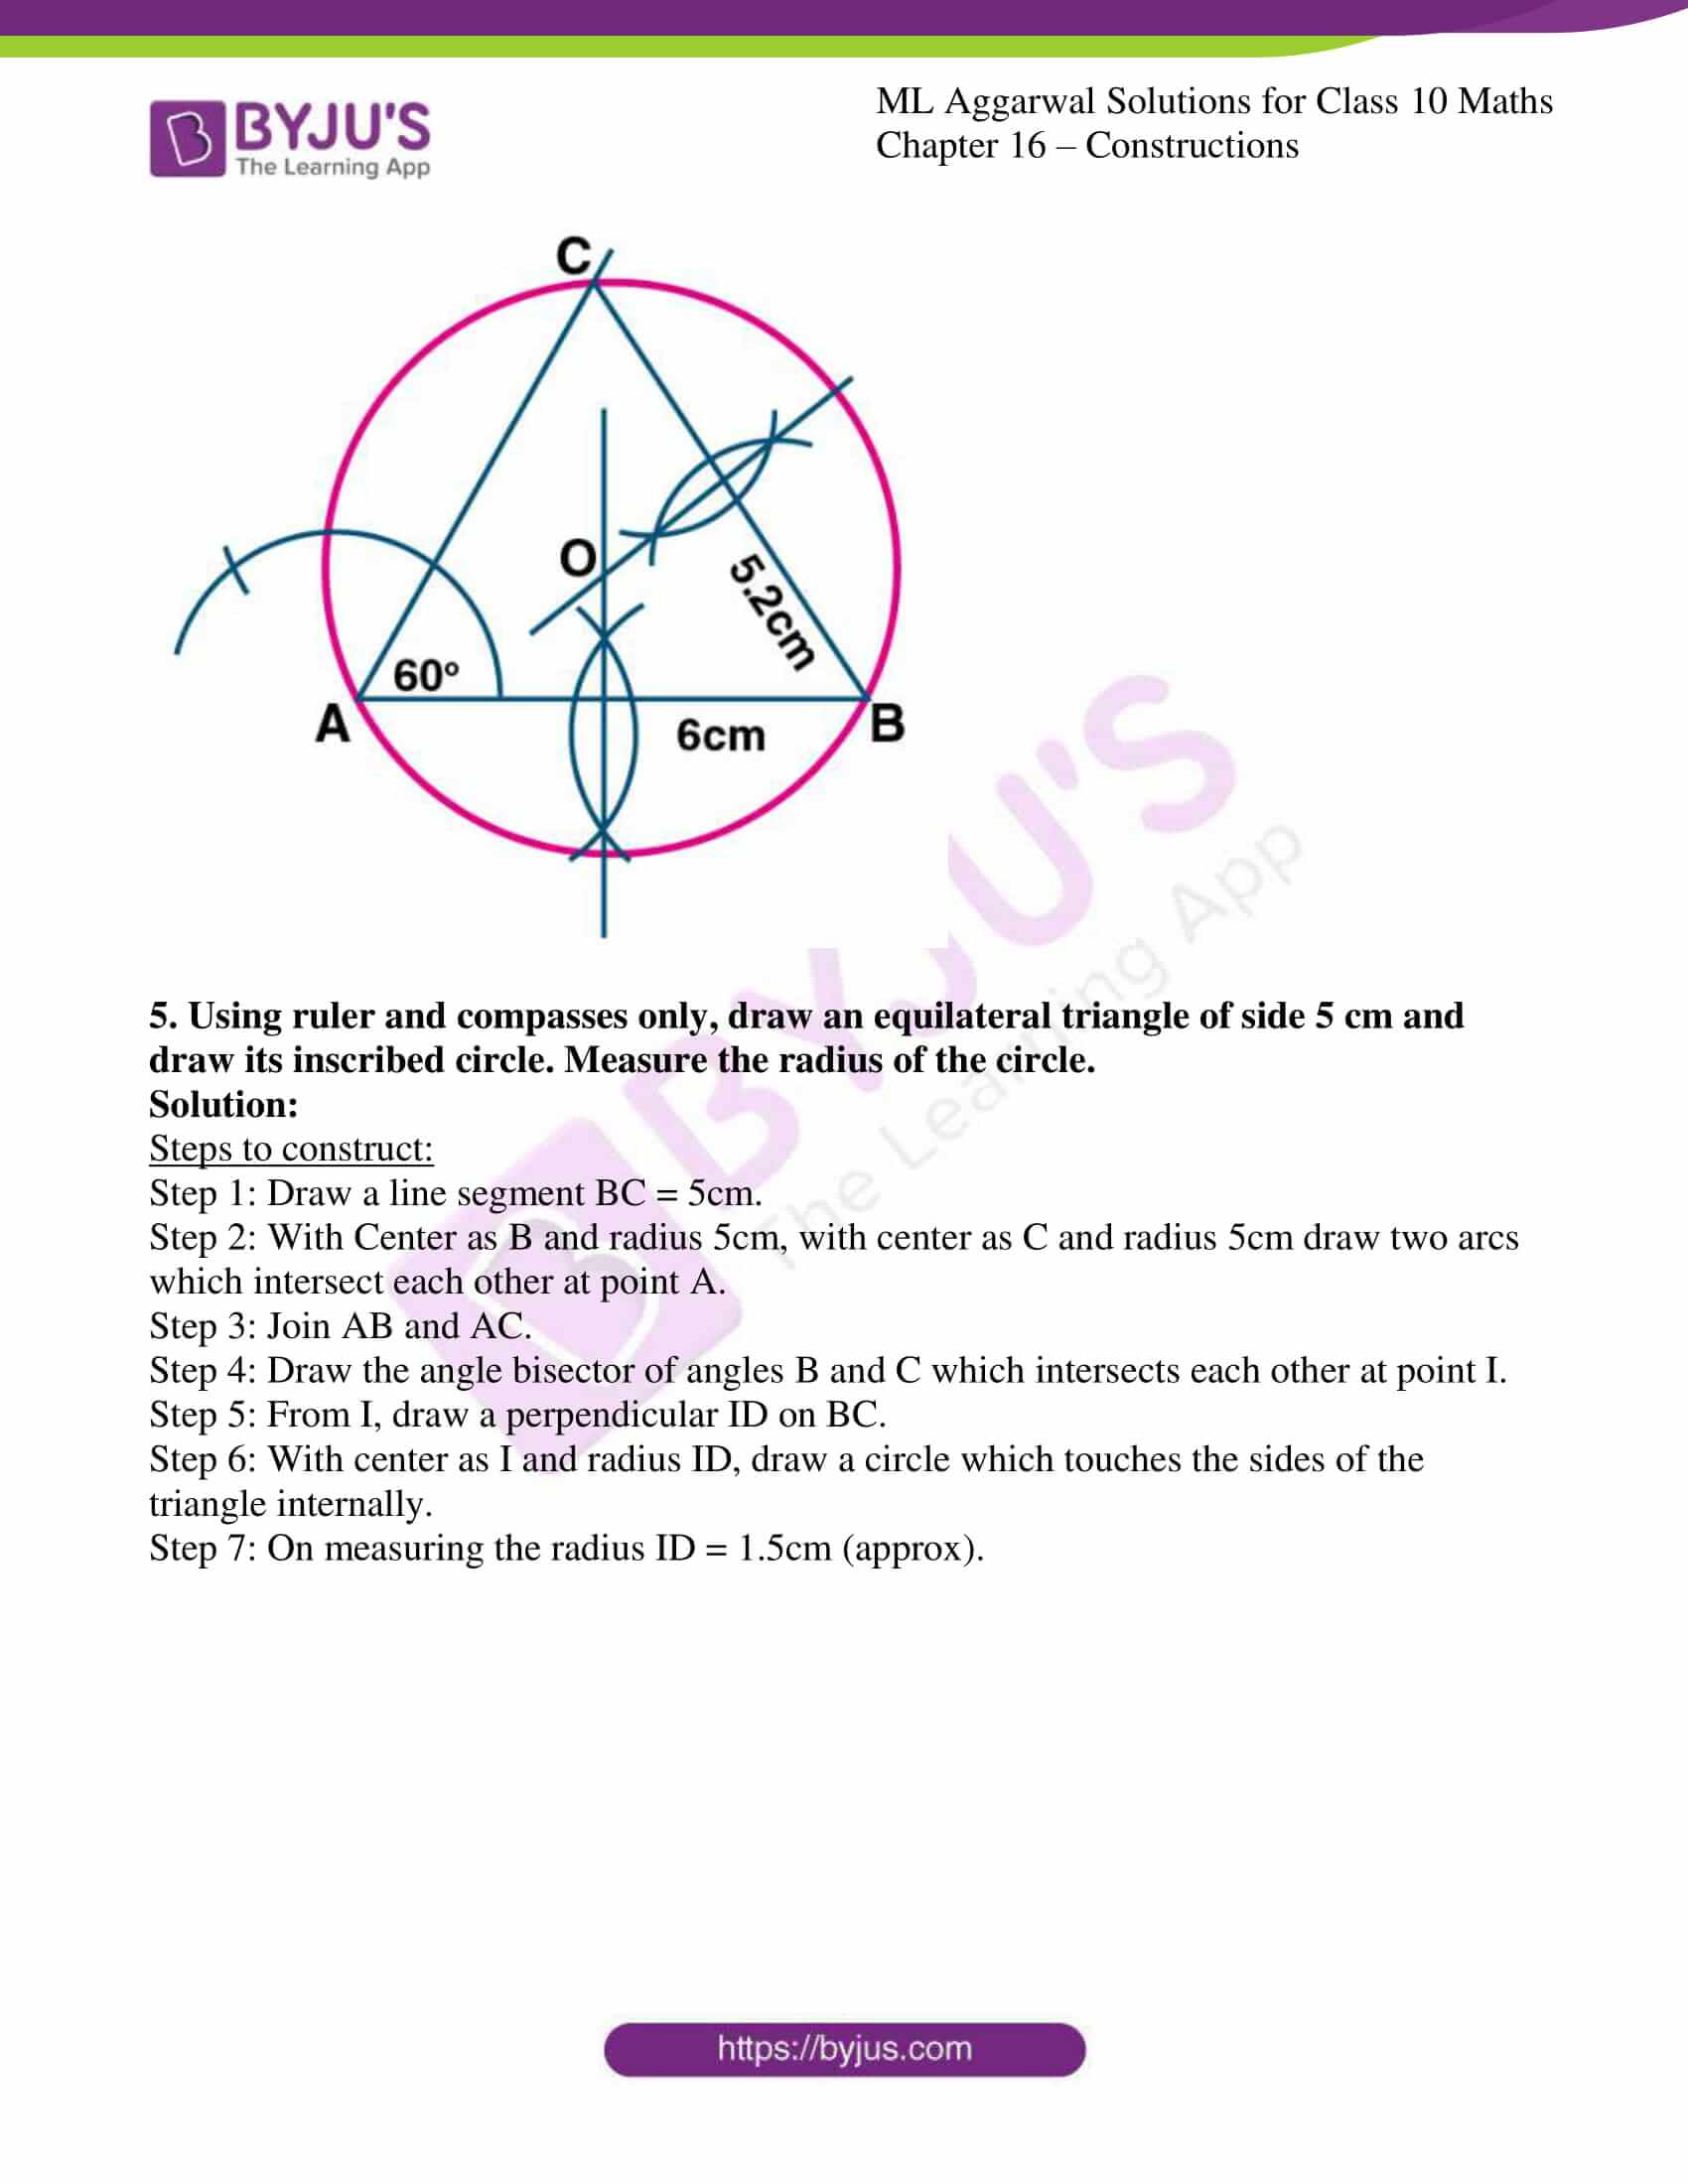 ml aggarwal solutions class 10 maths chapter 16 08